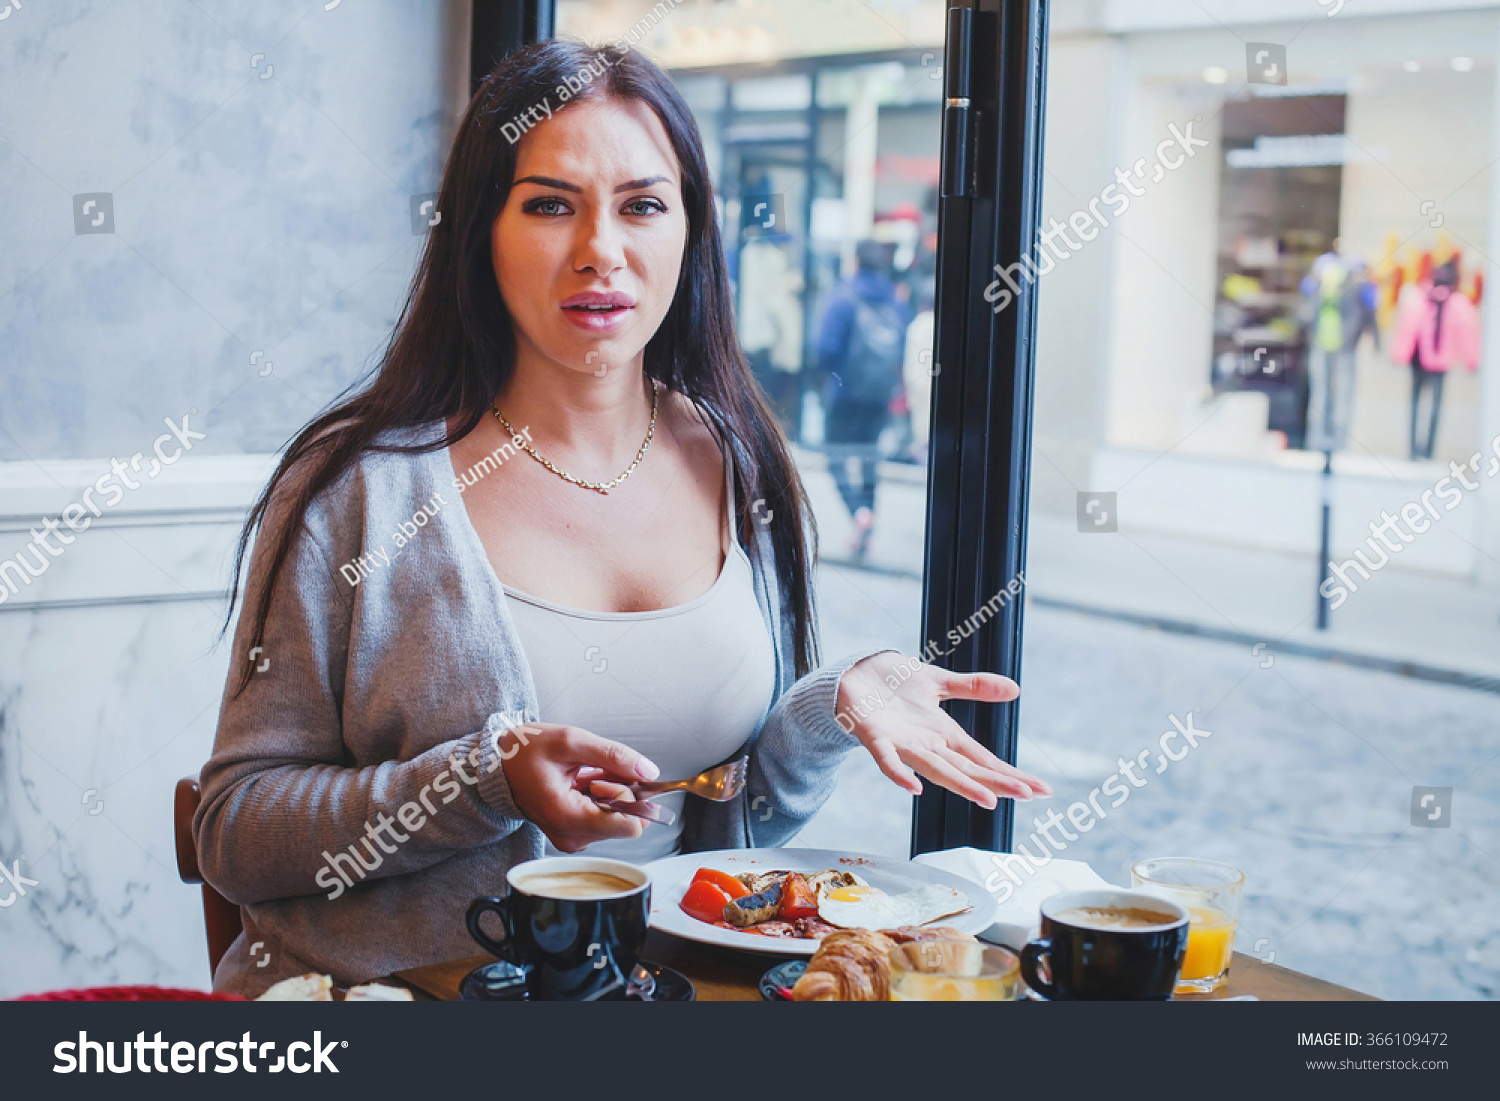 Unhappy Customer In Restaurant, Angry Woman Complaining ...